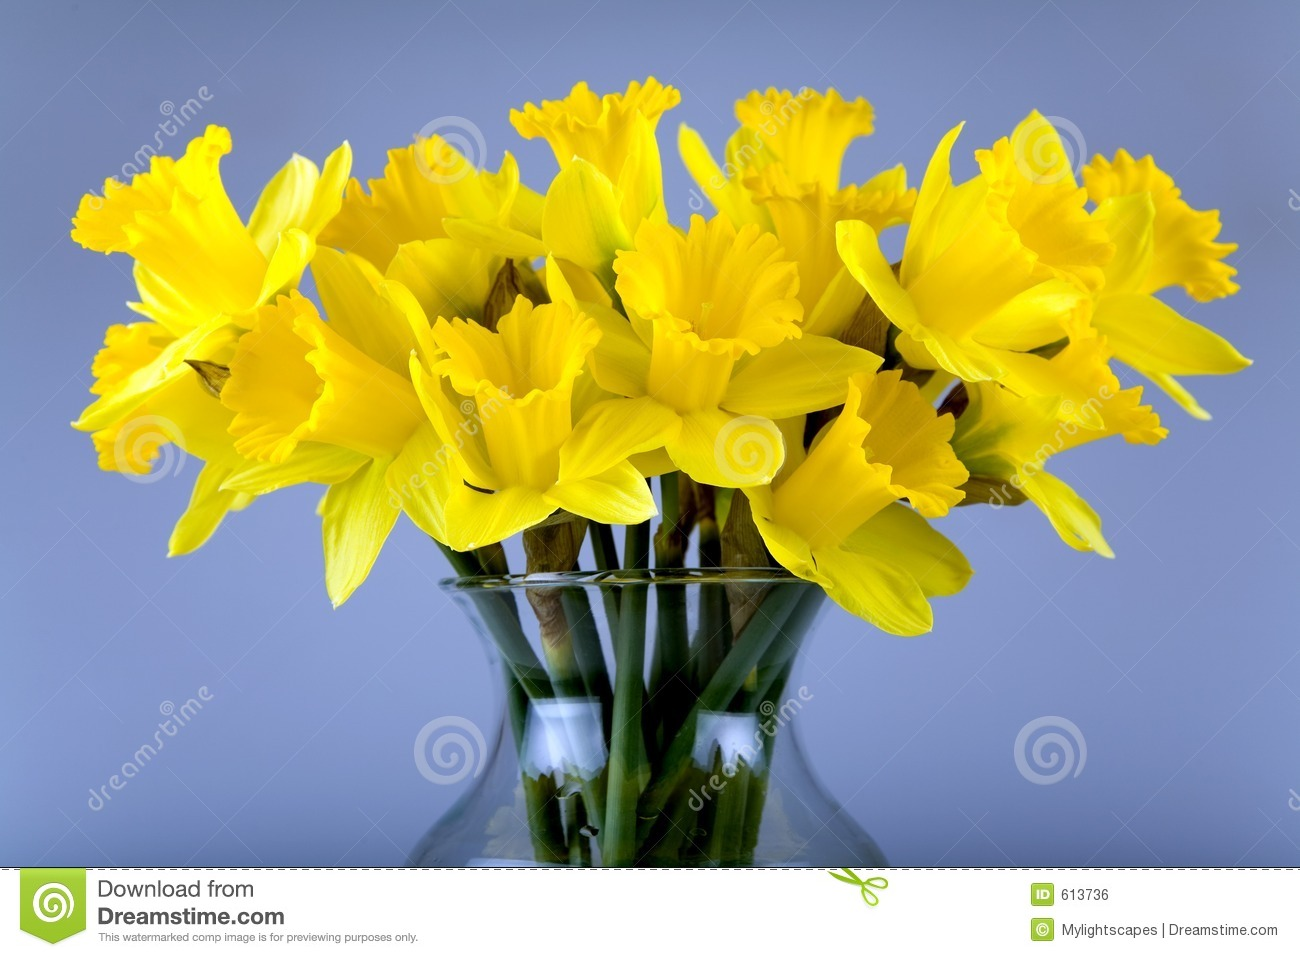 Flores do Daffodil